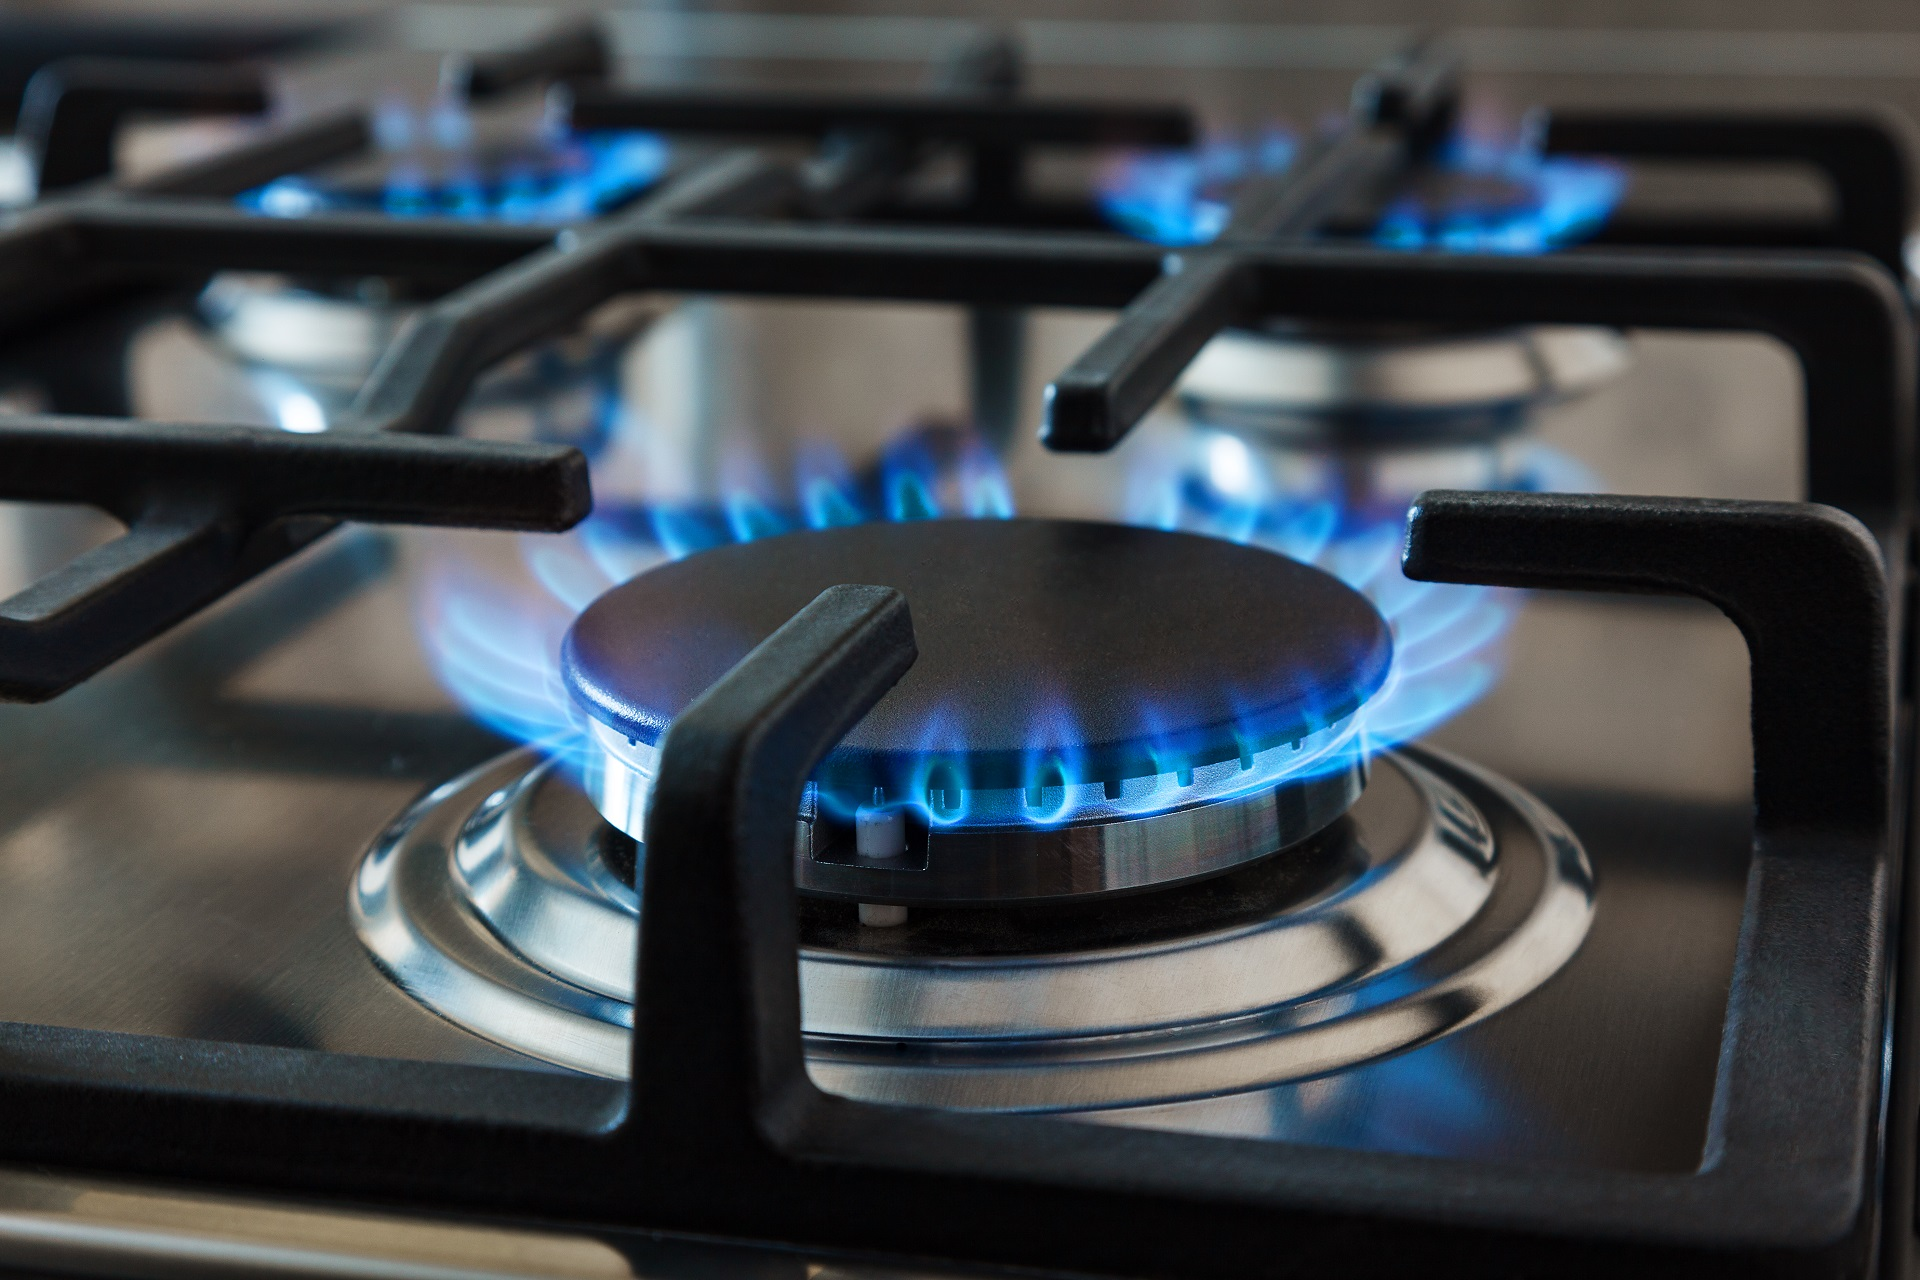 Best Professional Gas Range For The Home Review: Top in ...